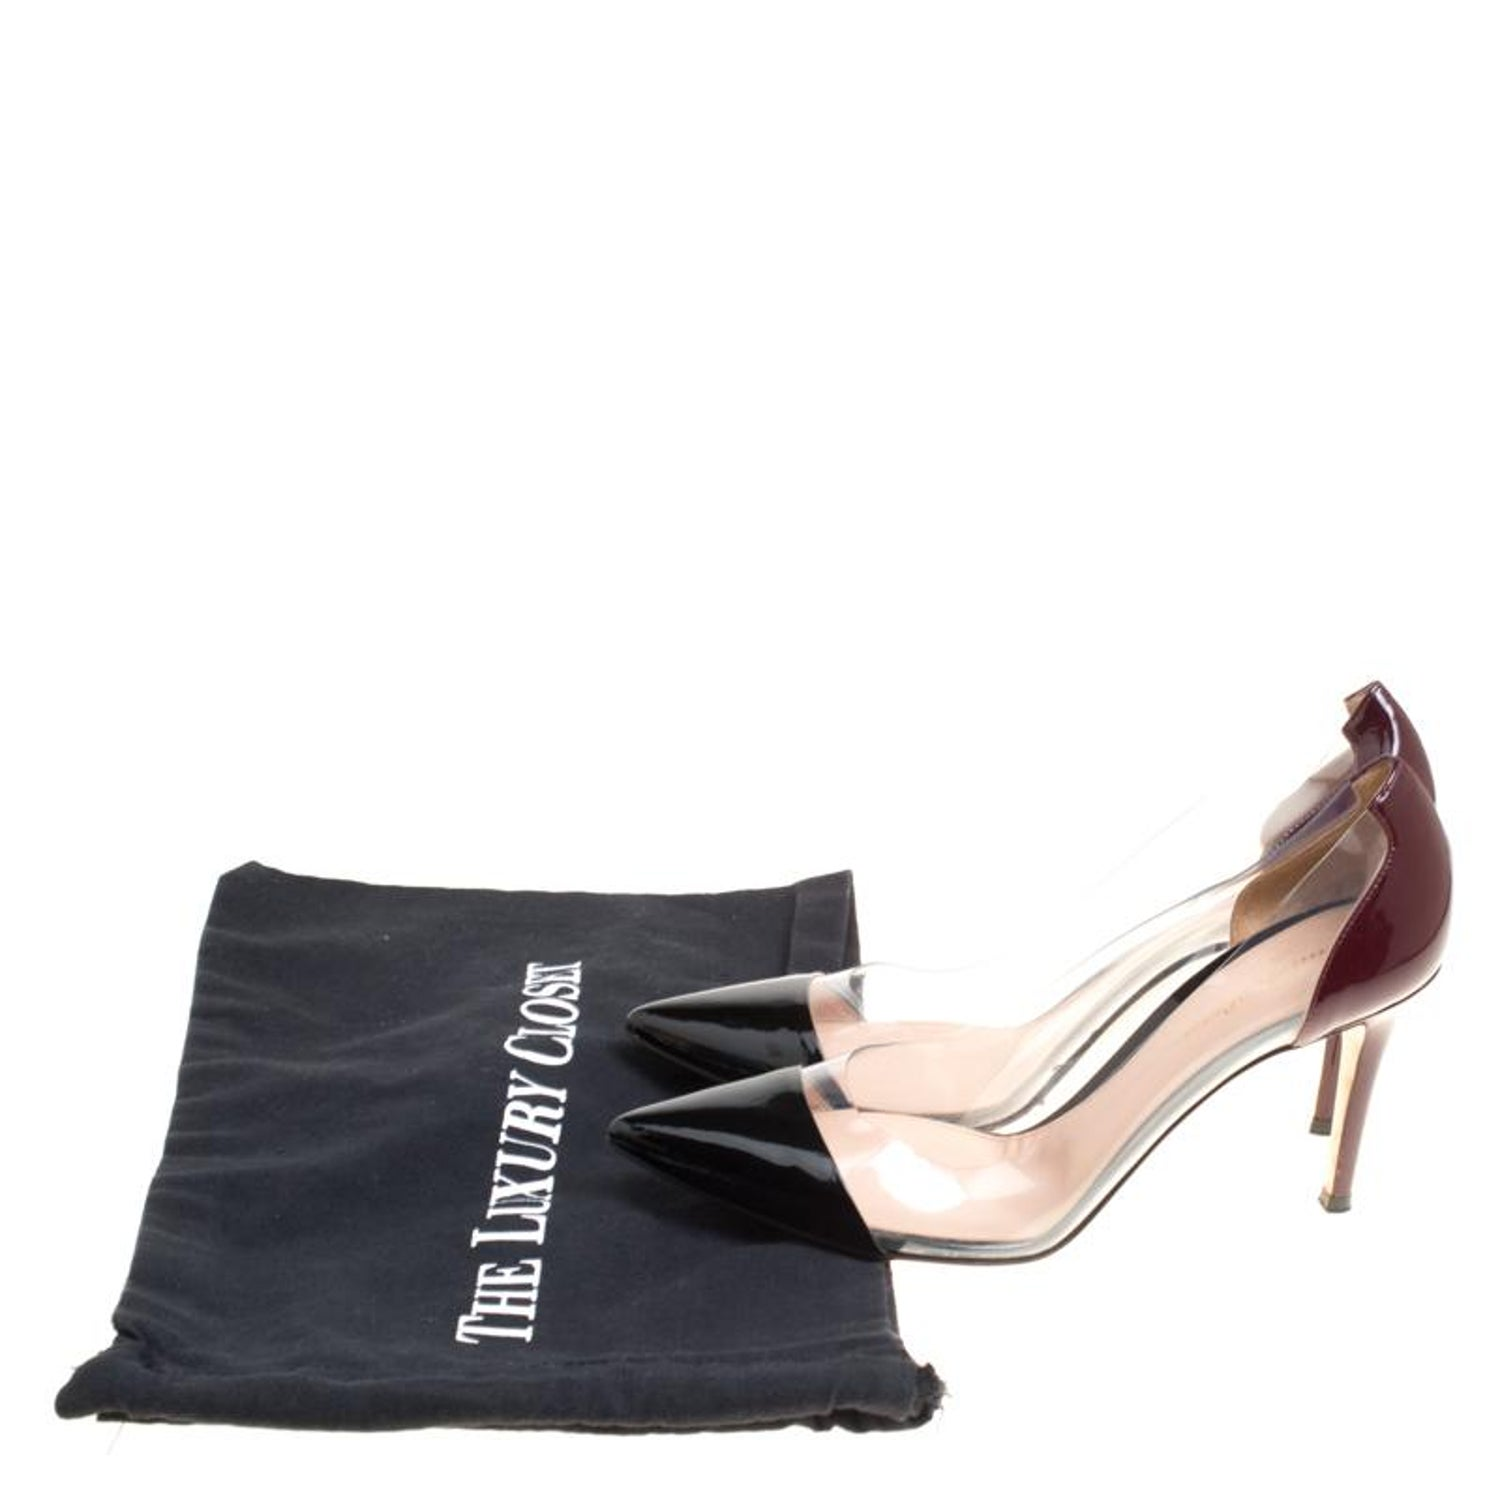 4f8a0b85714 Gianvito Rossi Two Tone Patent Leather and PVC Plexi Pumps Size 38.5 at  1stdibs